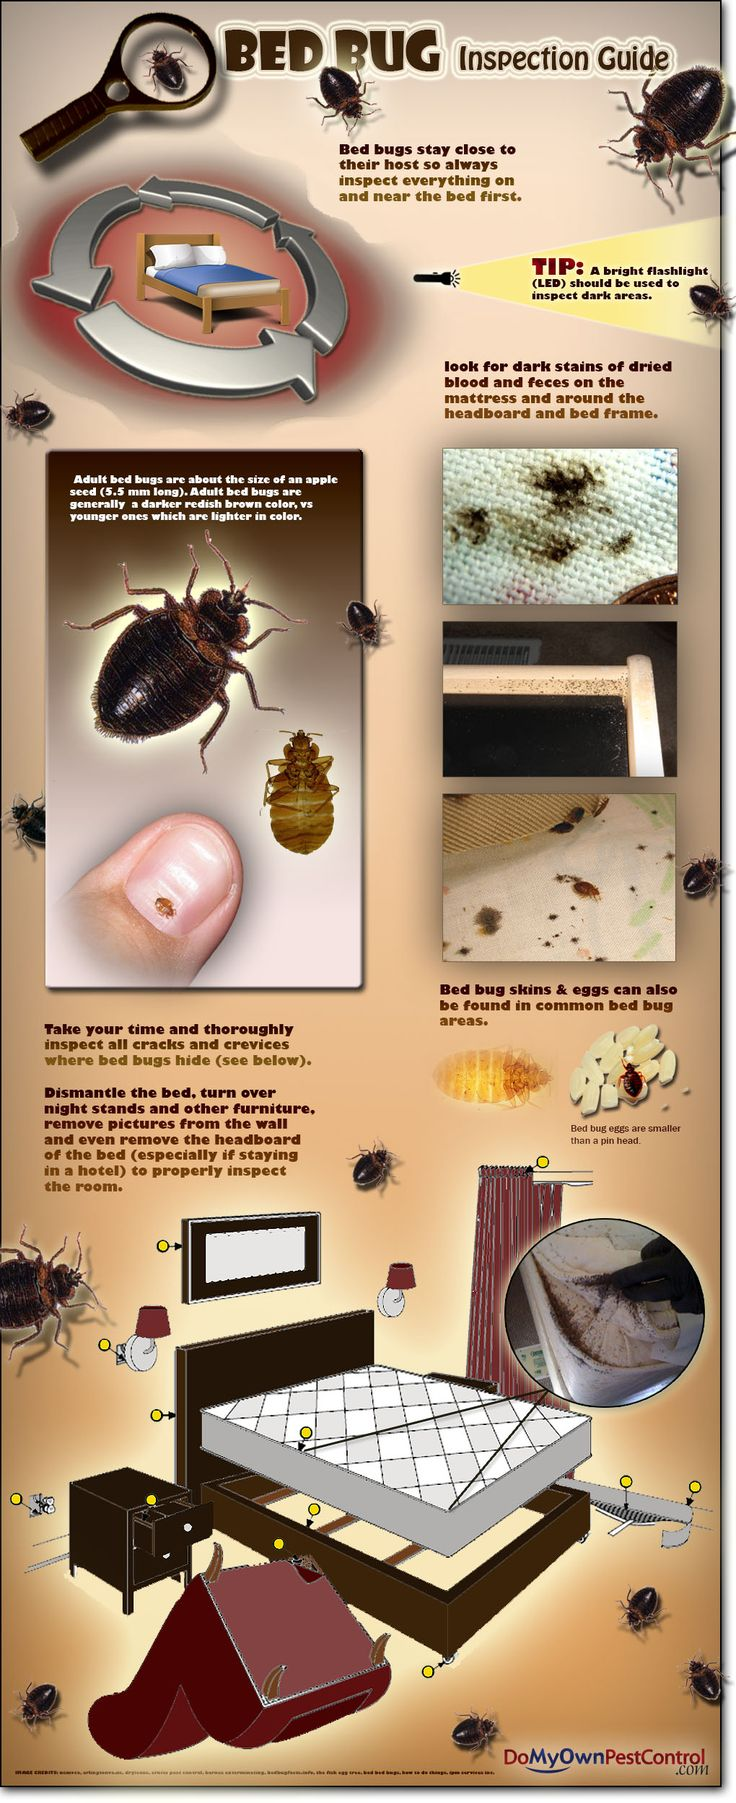 Bed Bug Inspection - A guide on how to do your own bed bug inspection. ~ via www.domyownpestcontrol.com/bed-bugs-c-39.html